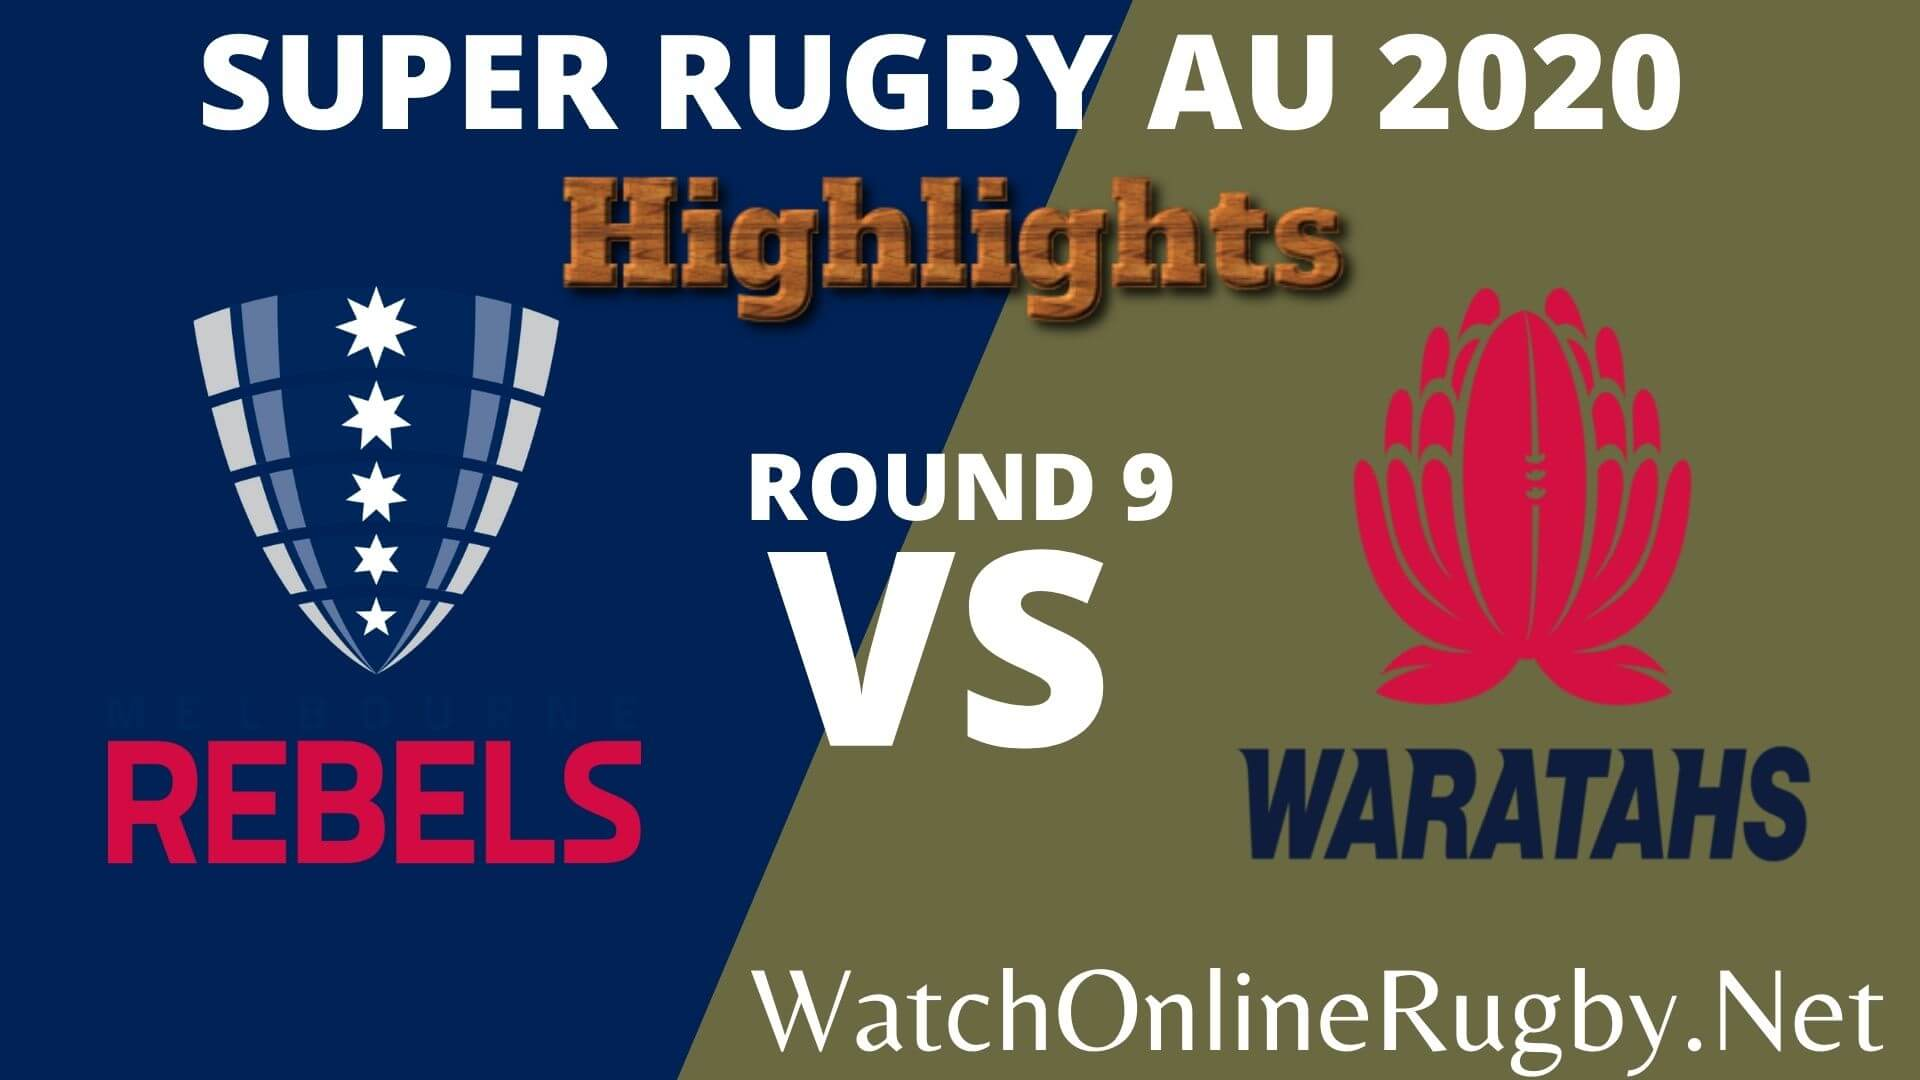 Rebels Vs Waratahs Highlights 2020 Rd 9